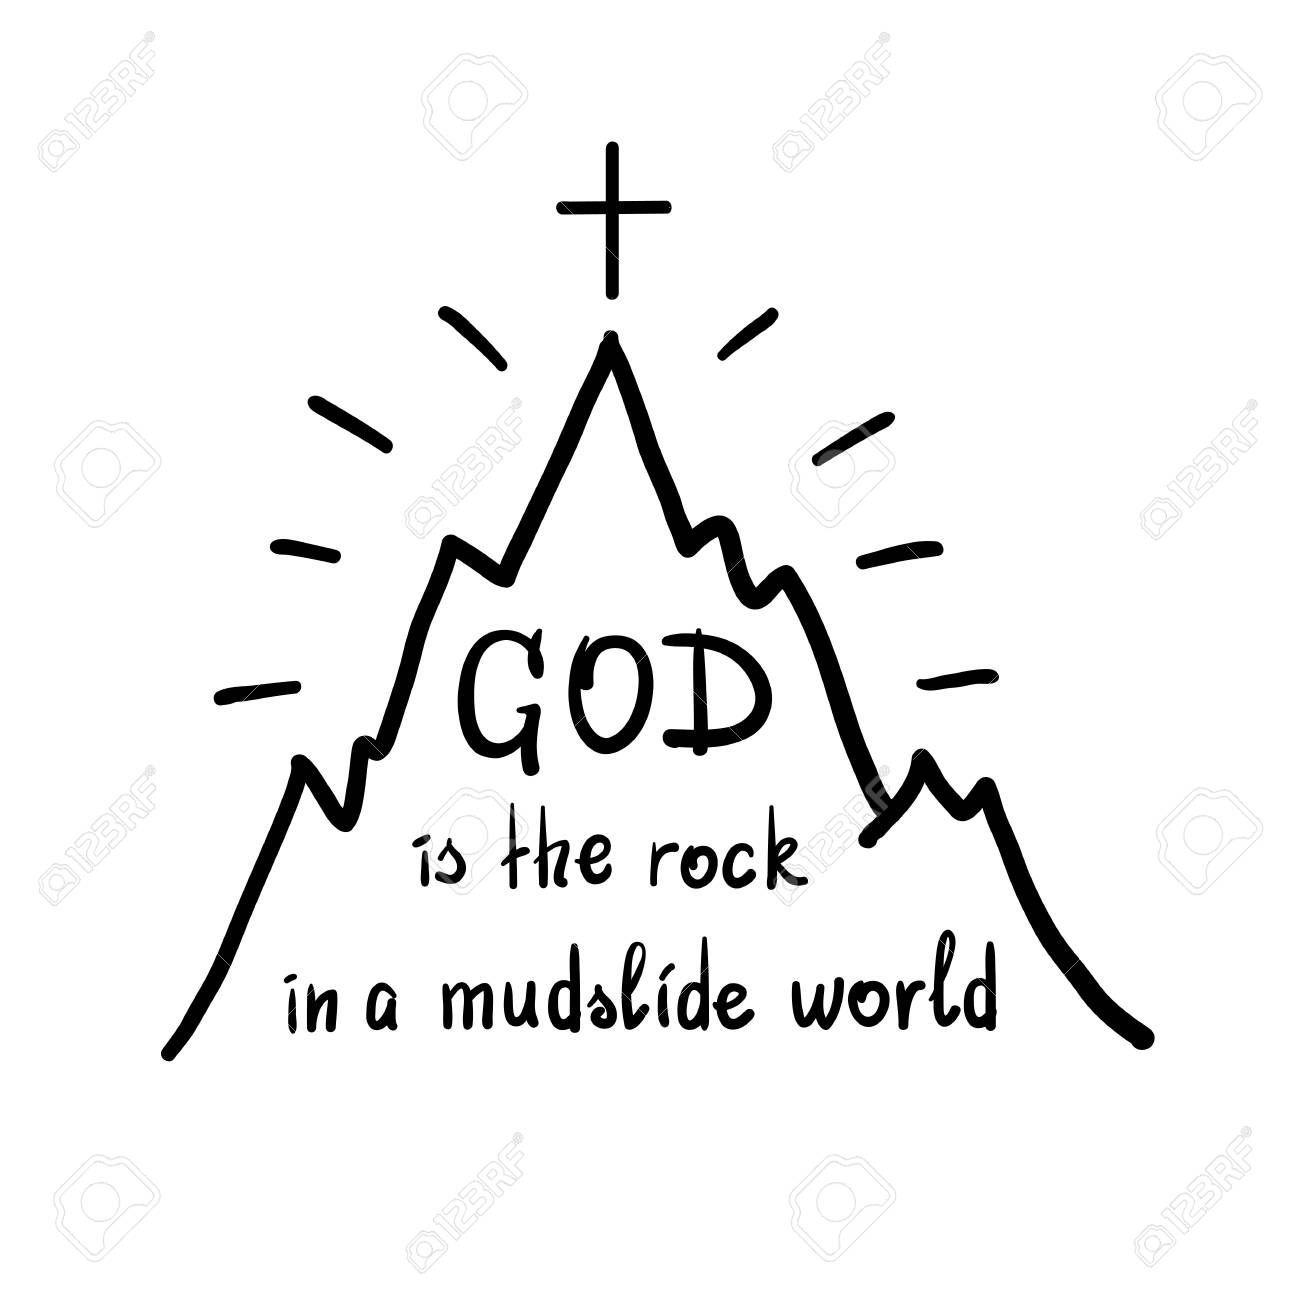 God Is The Rock In The Mudslide World Motivational Quote Lettering